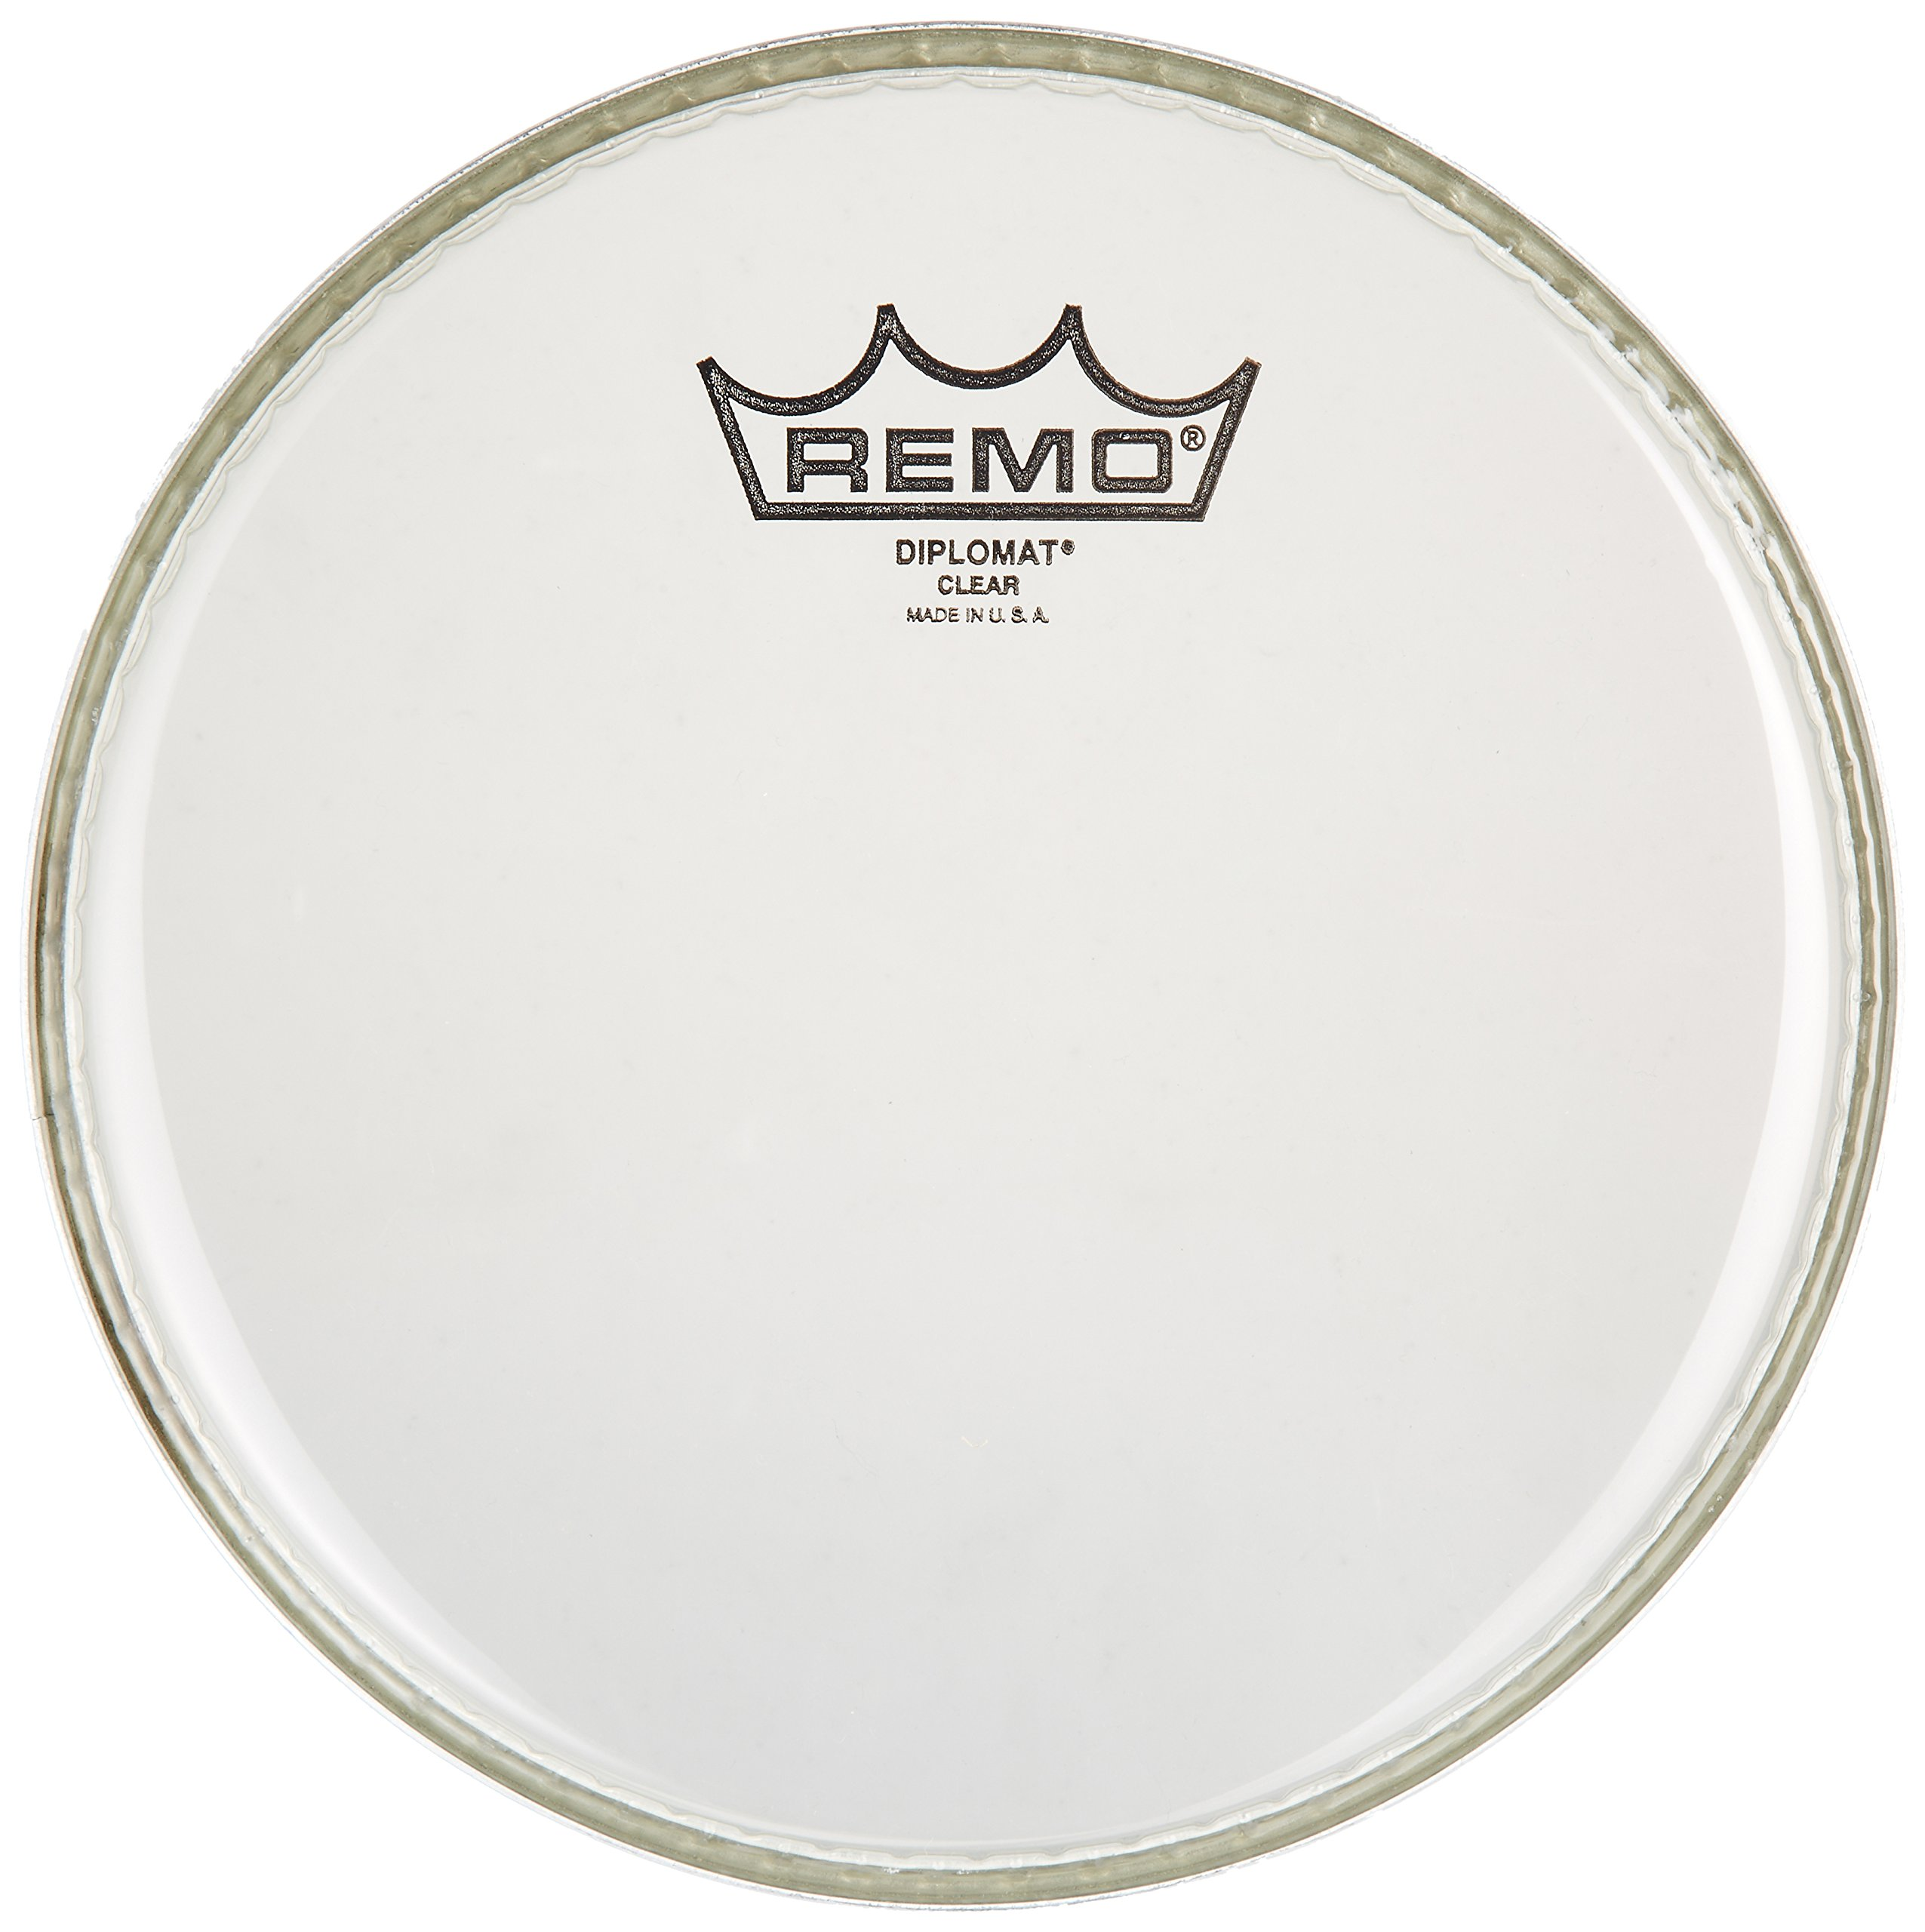 Remo BD0308-00 Clear Diplomat Drum Head - 8-Inch by Remo